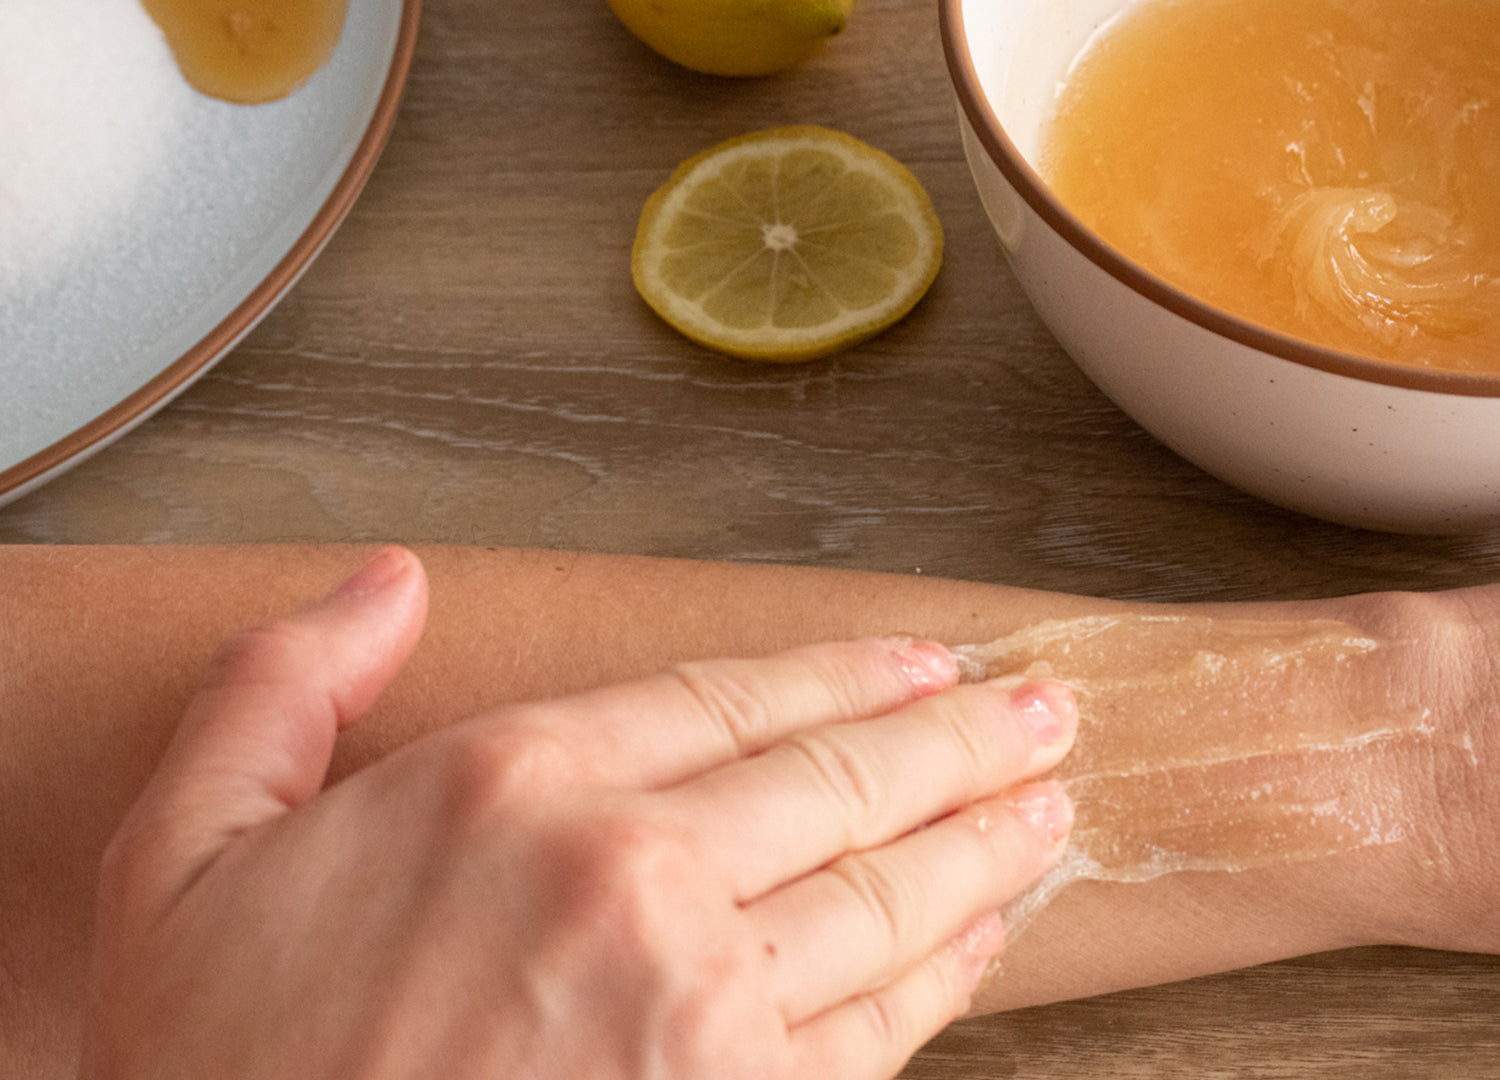 Once you have reached the end of your sugar molding path, straighten your fingertips flat, applying almost no pressure on the edge of the sugar wax